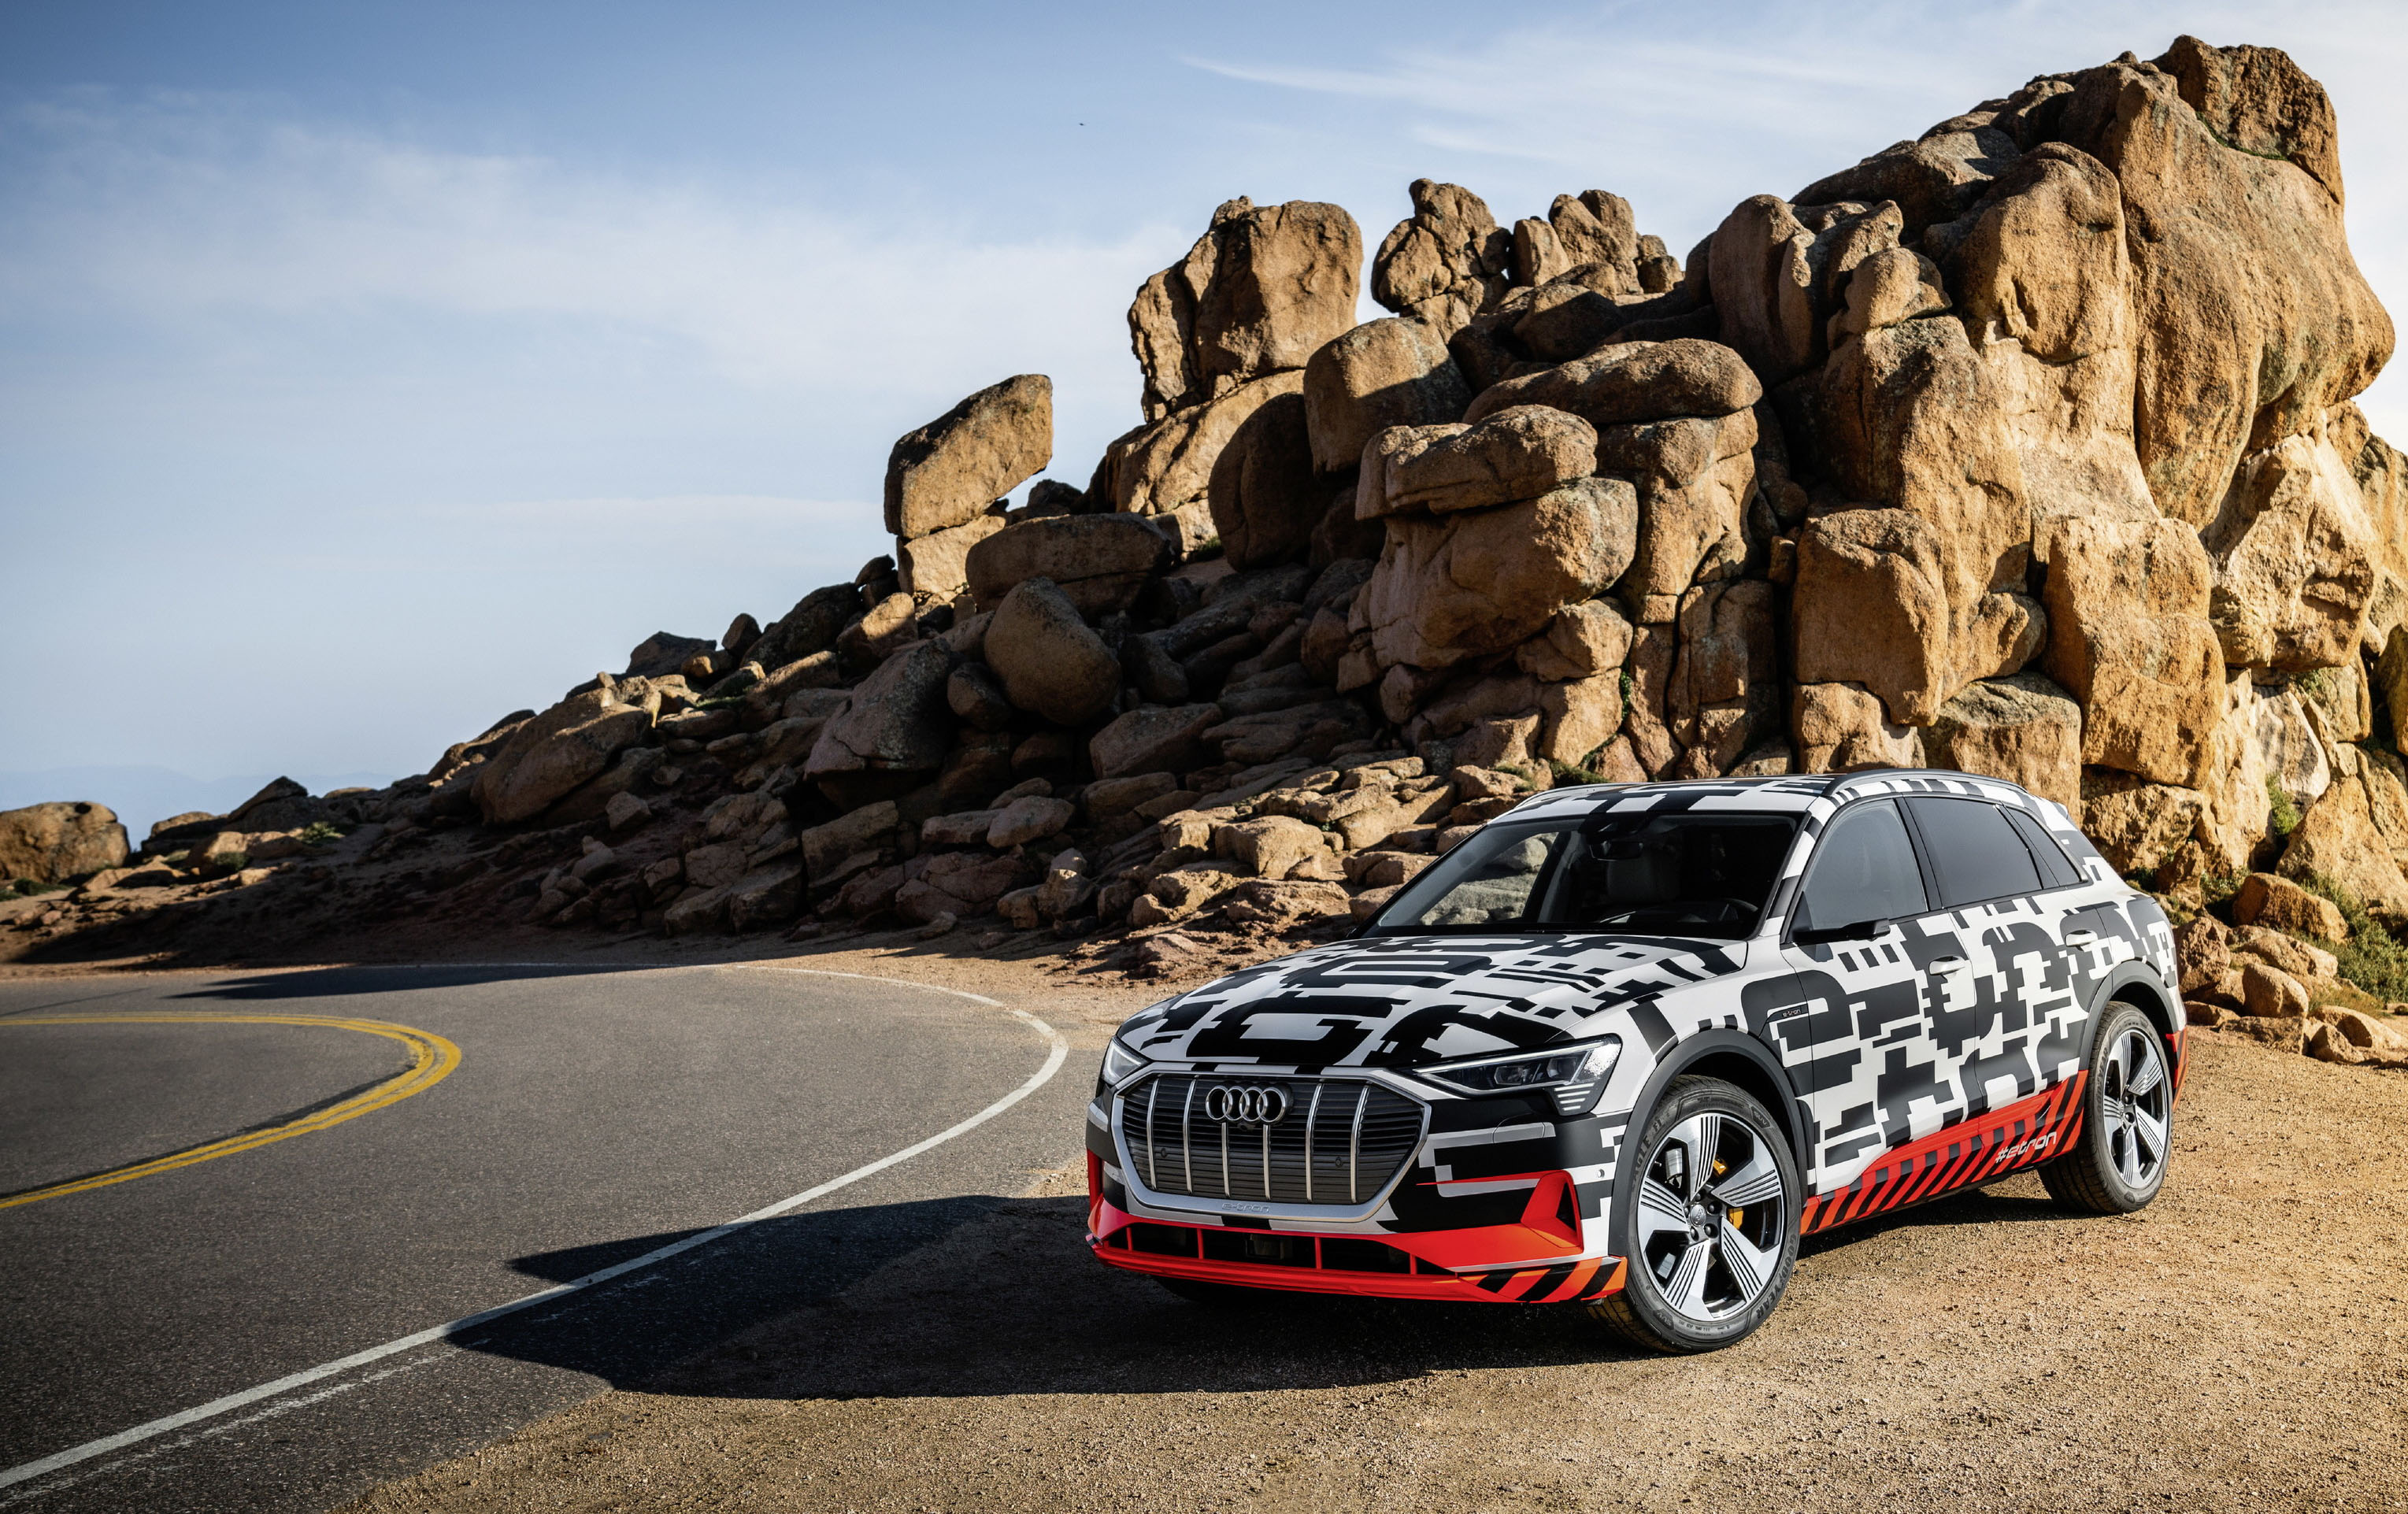 The Audi e-tron prototype on recuperation test at Pikes Peak